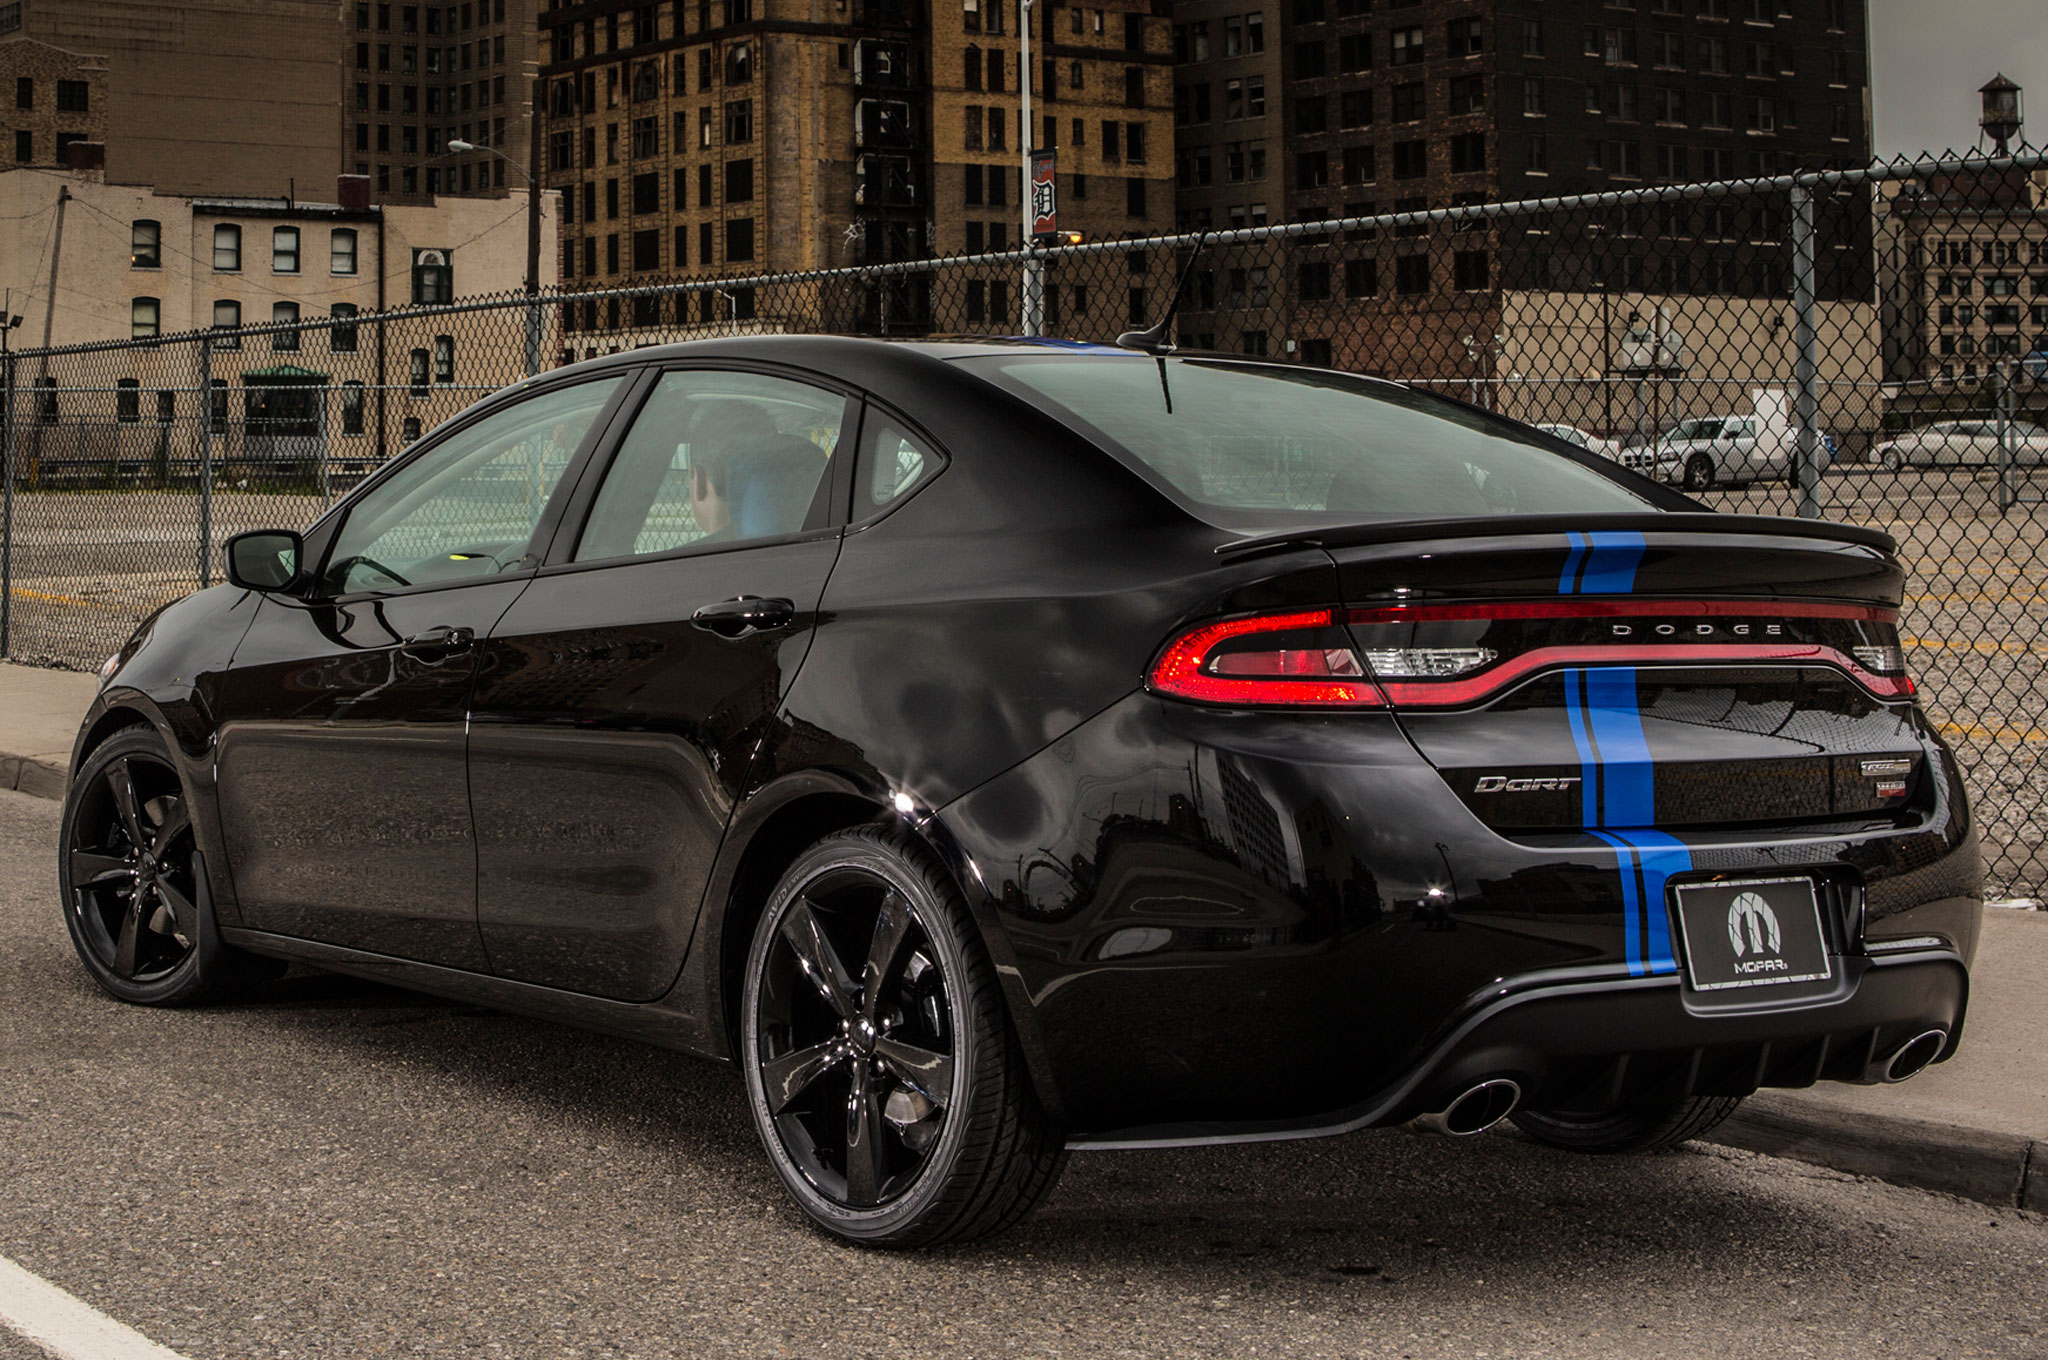 Mopar Modified 2013 Dodge Dart Gets $26 480 MSRP